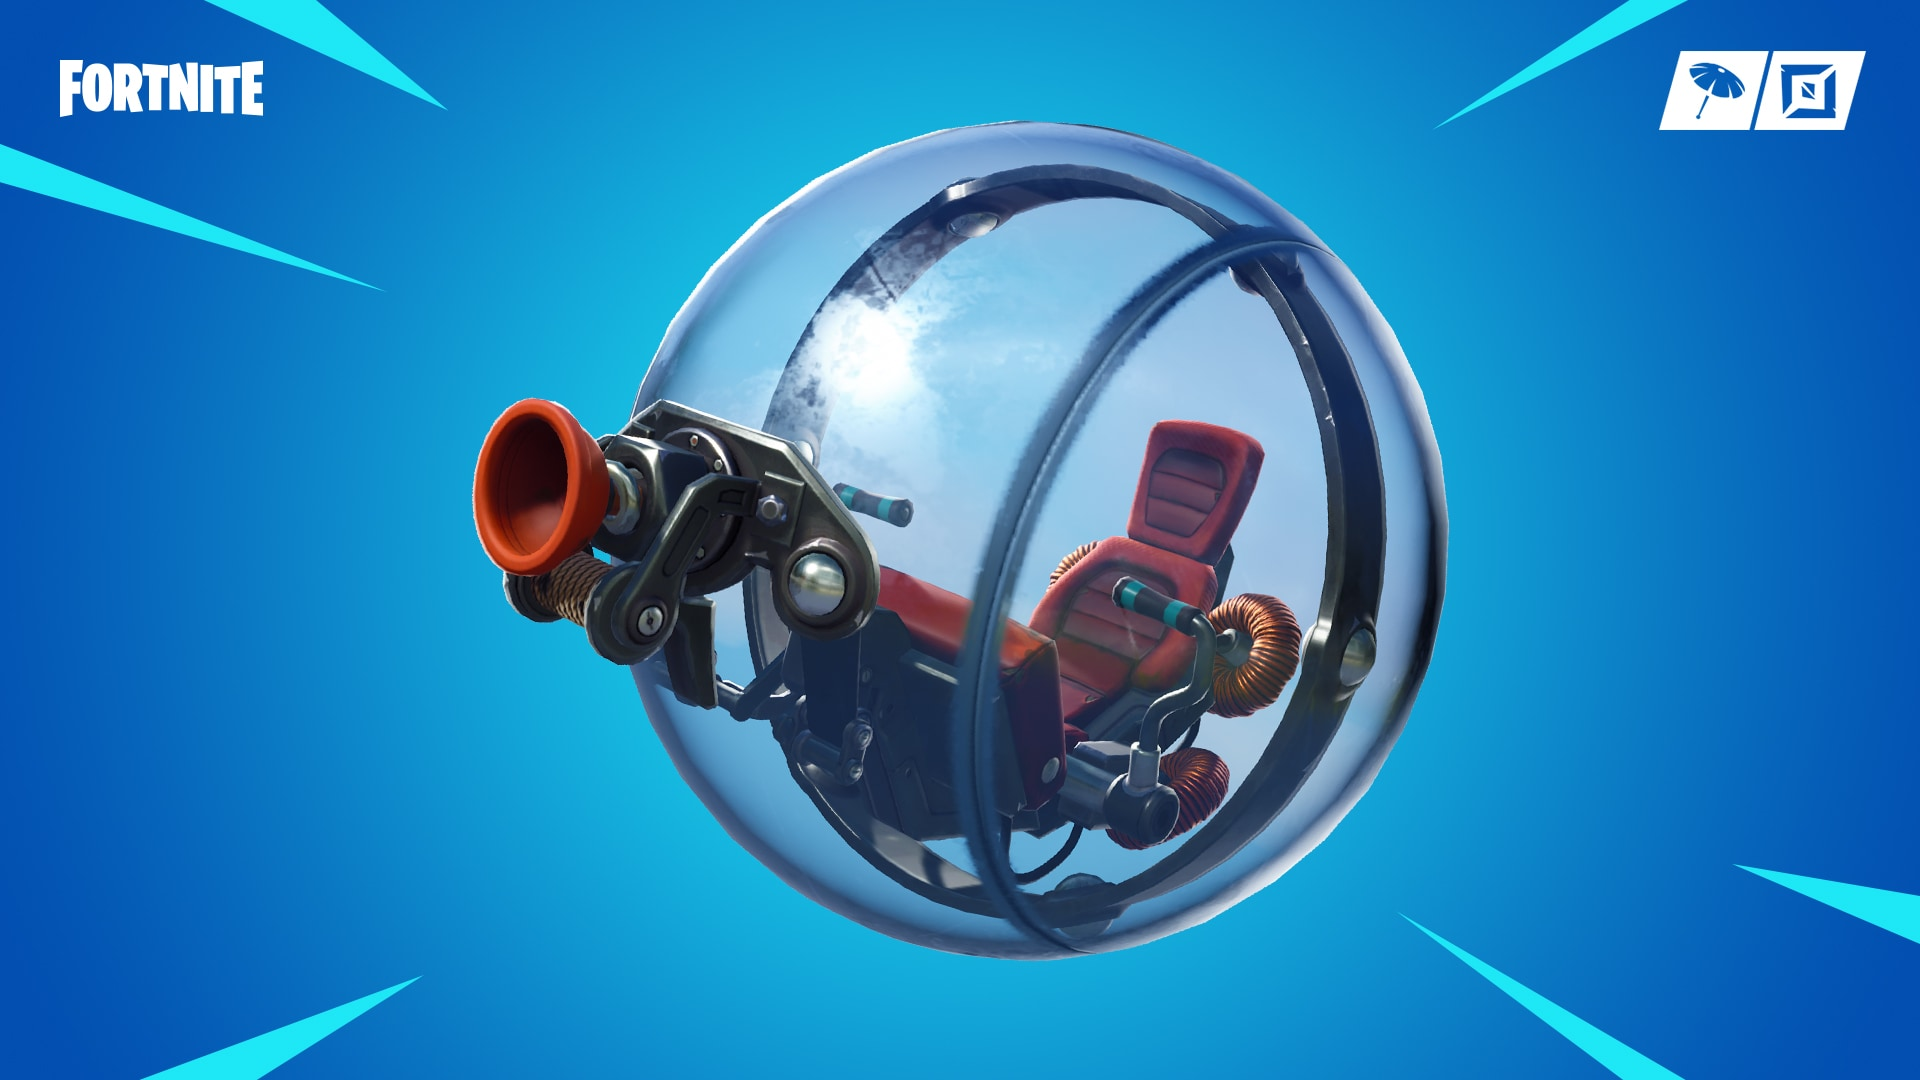 Fortnite-patch-8-10-05